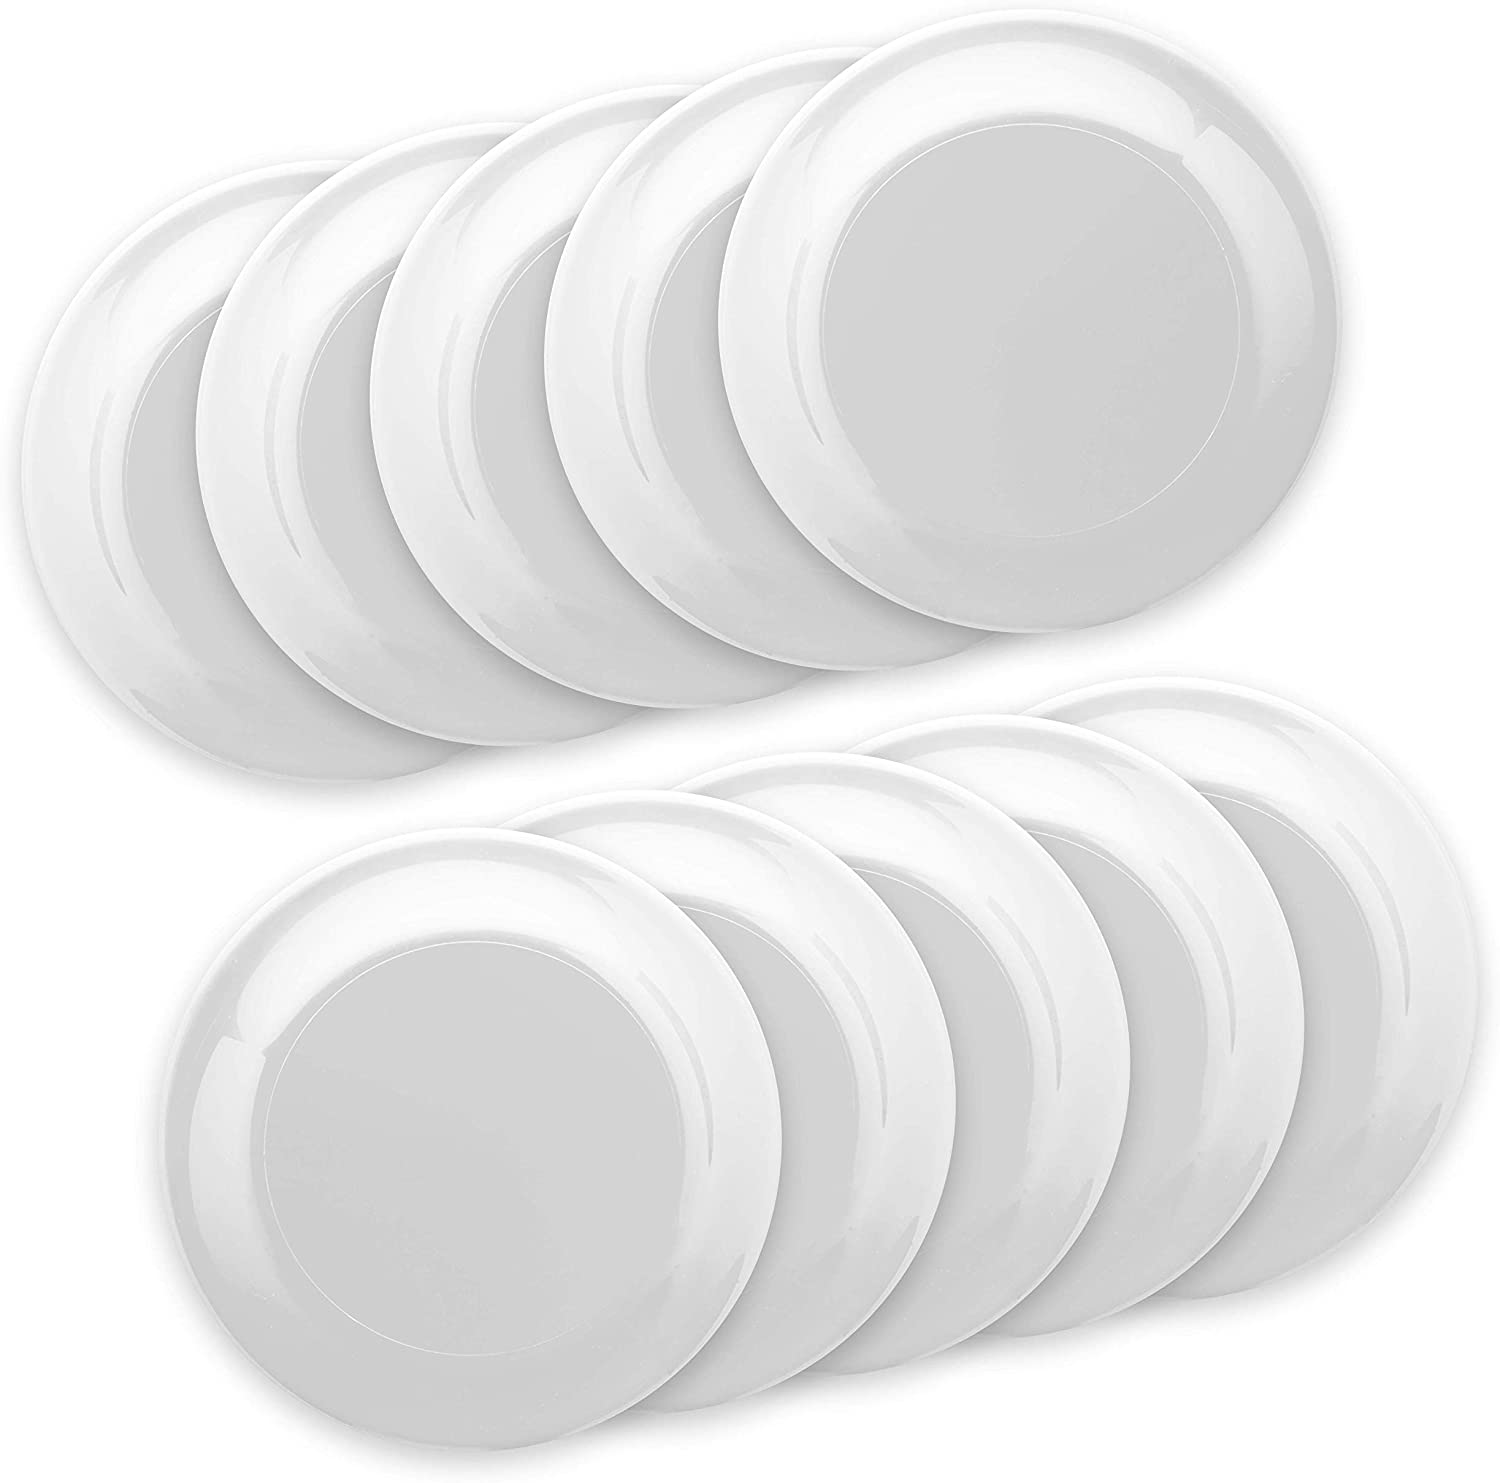 Frisbee Flying Discs - 10 pack - 9.25 in. Ultimate Frisbee Beach Sports Backyard Disc Golf Game - White